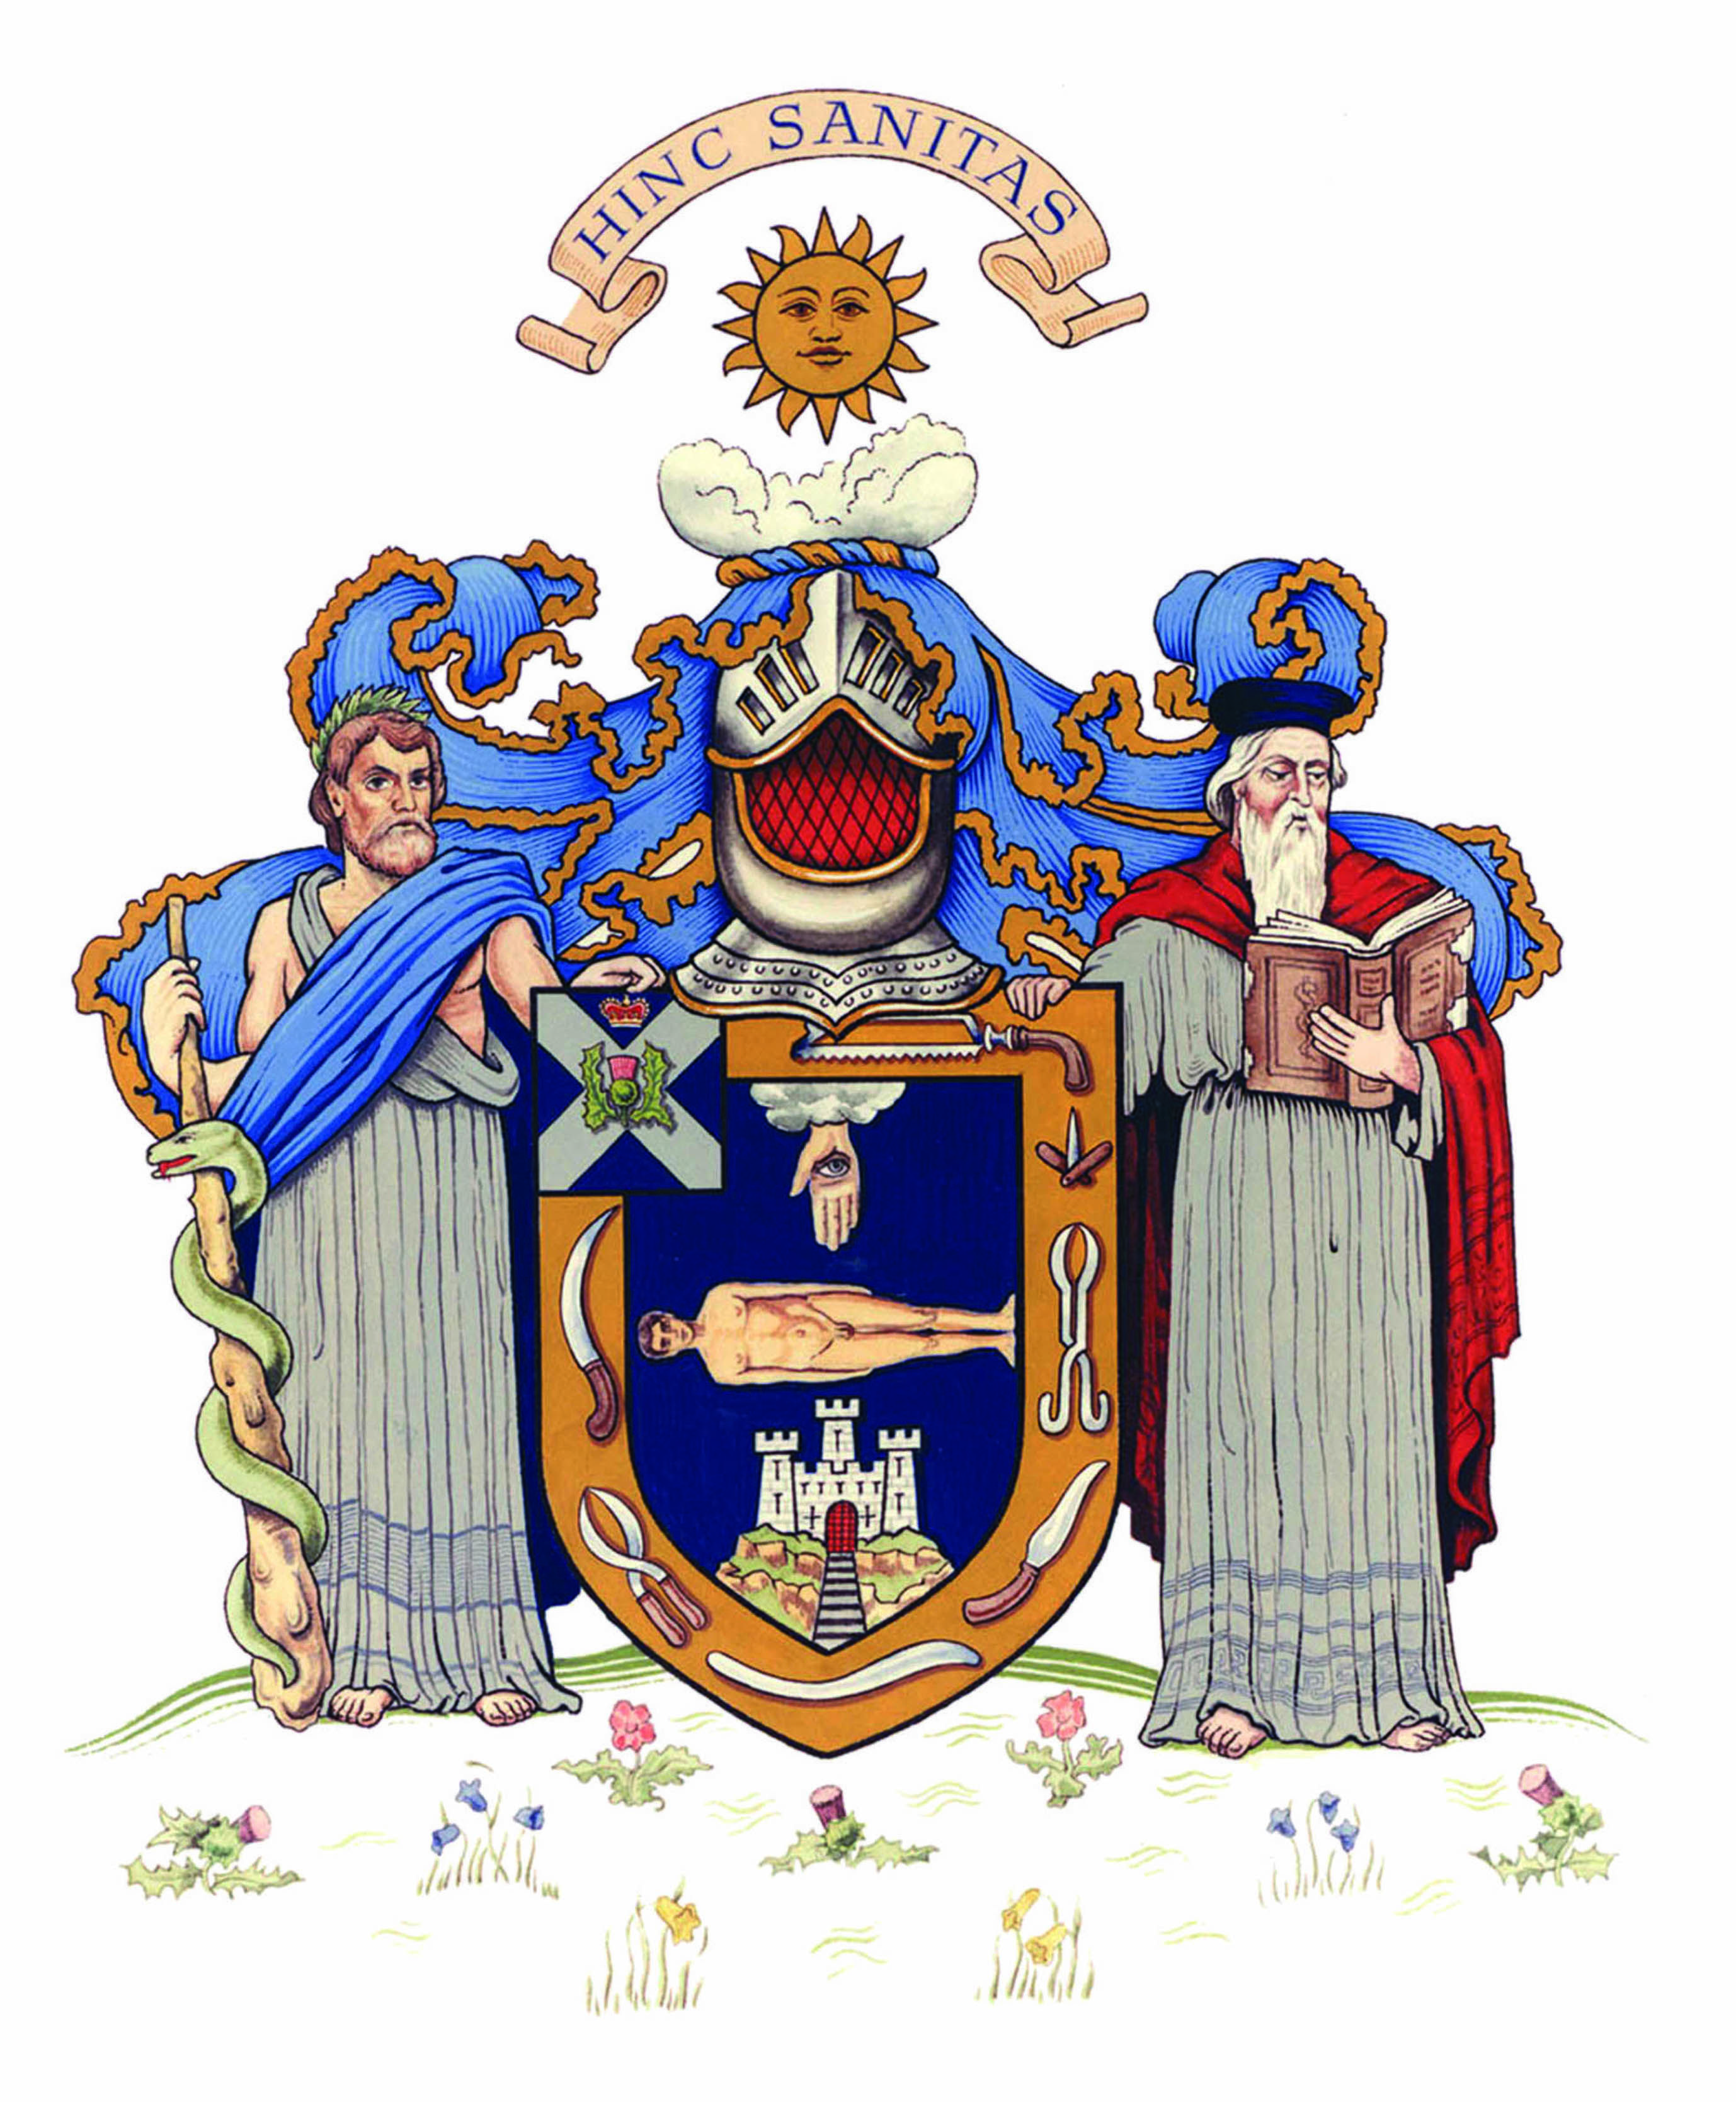 Royal College Of Surgeons Of Edinburgh Coat Of Arms Heraldry Arms